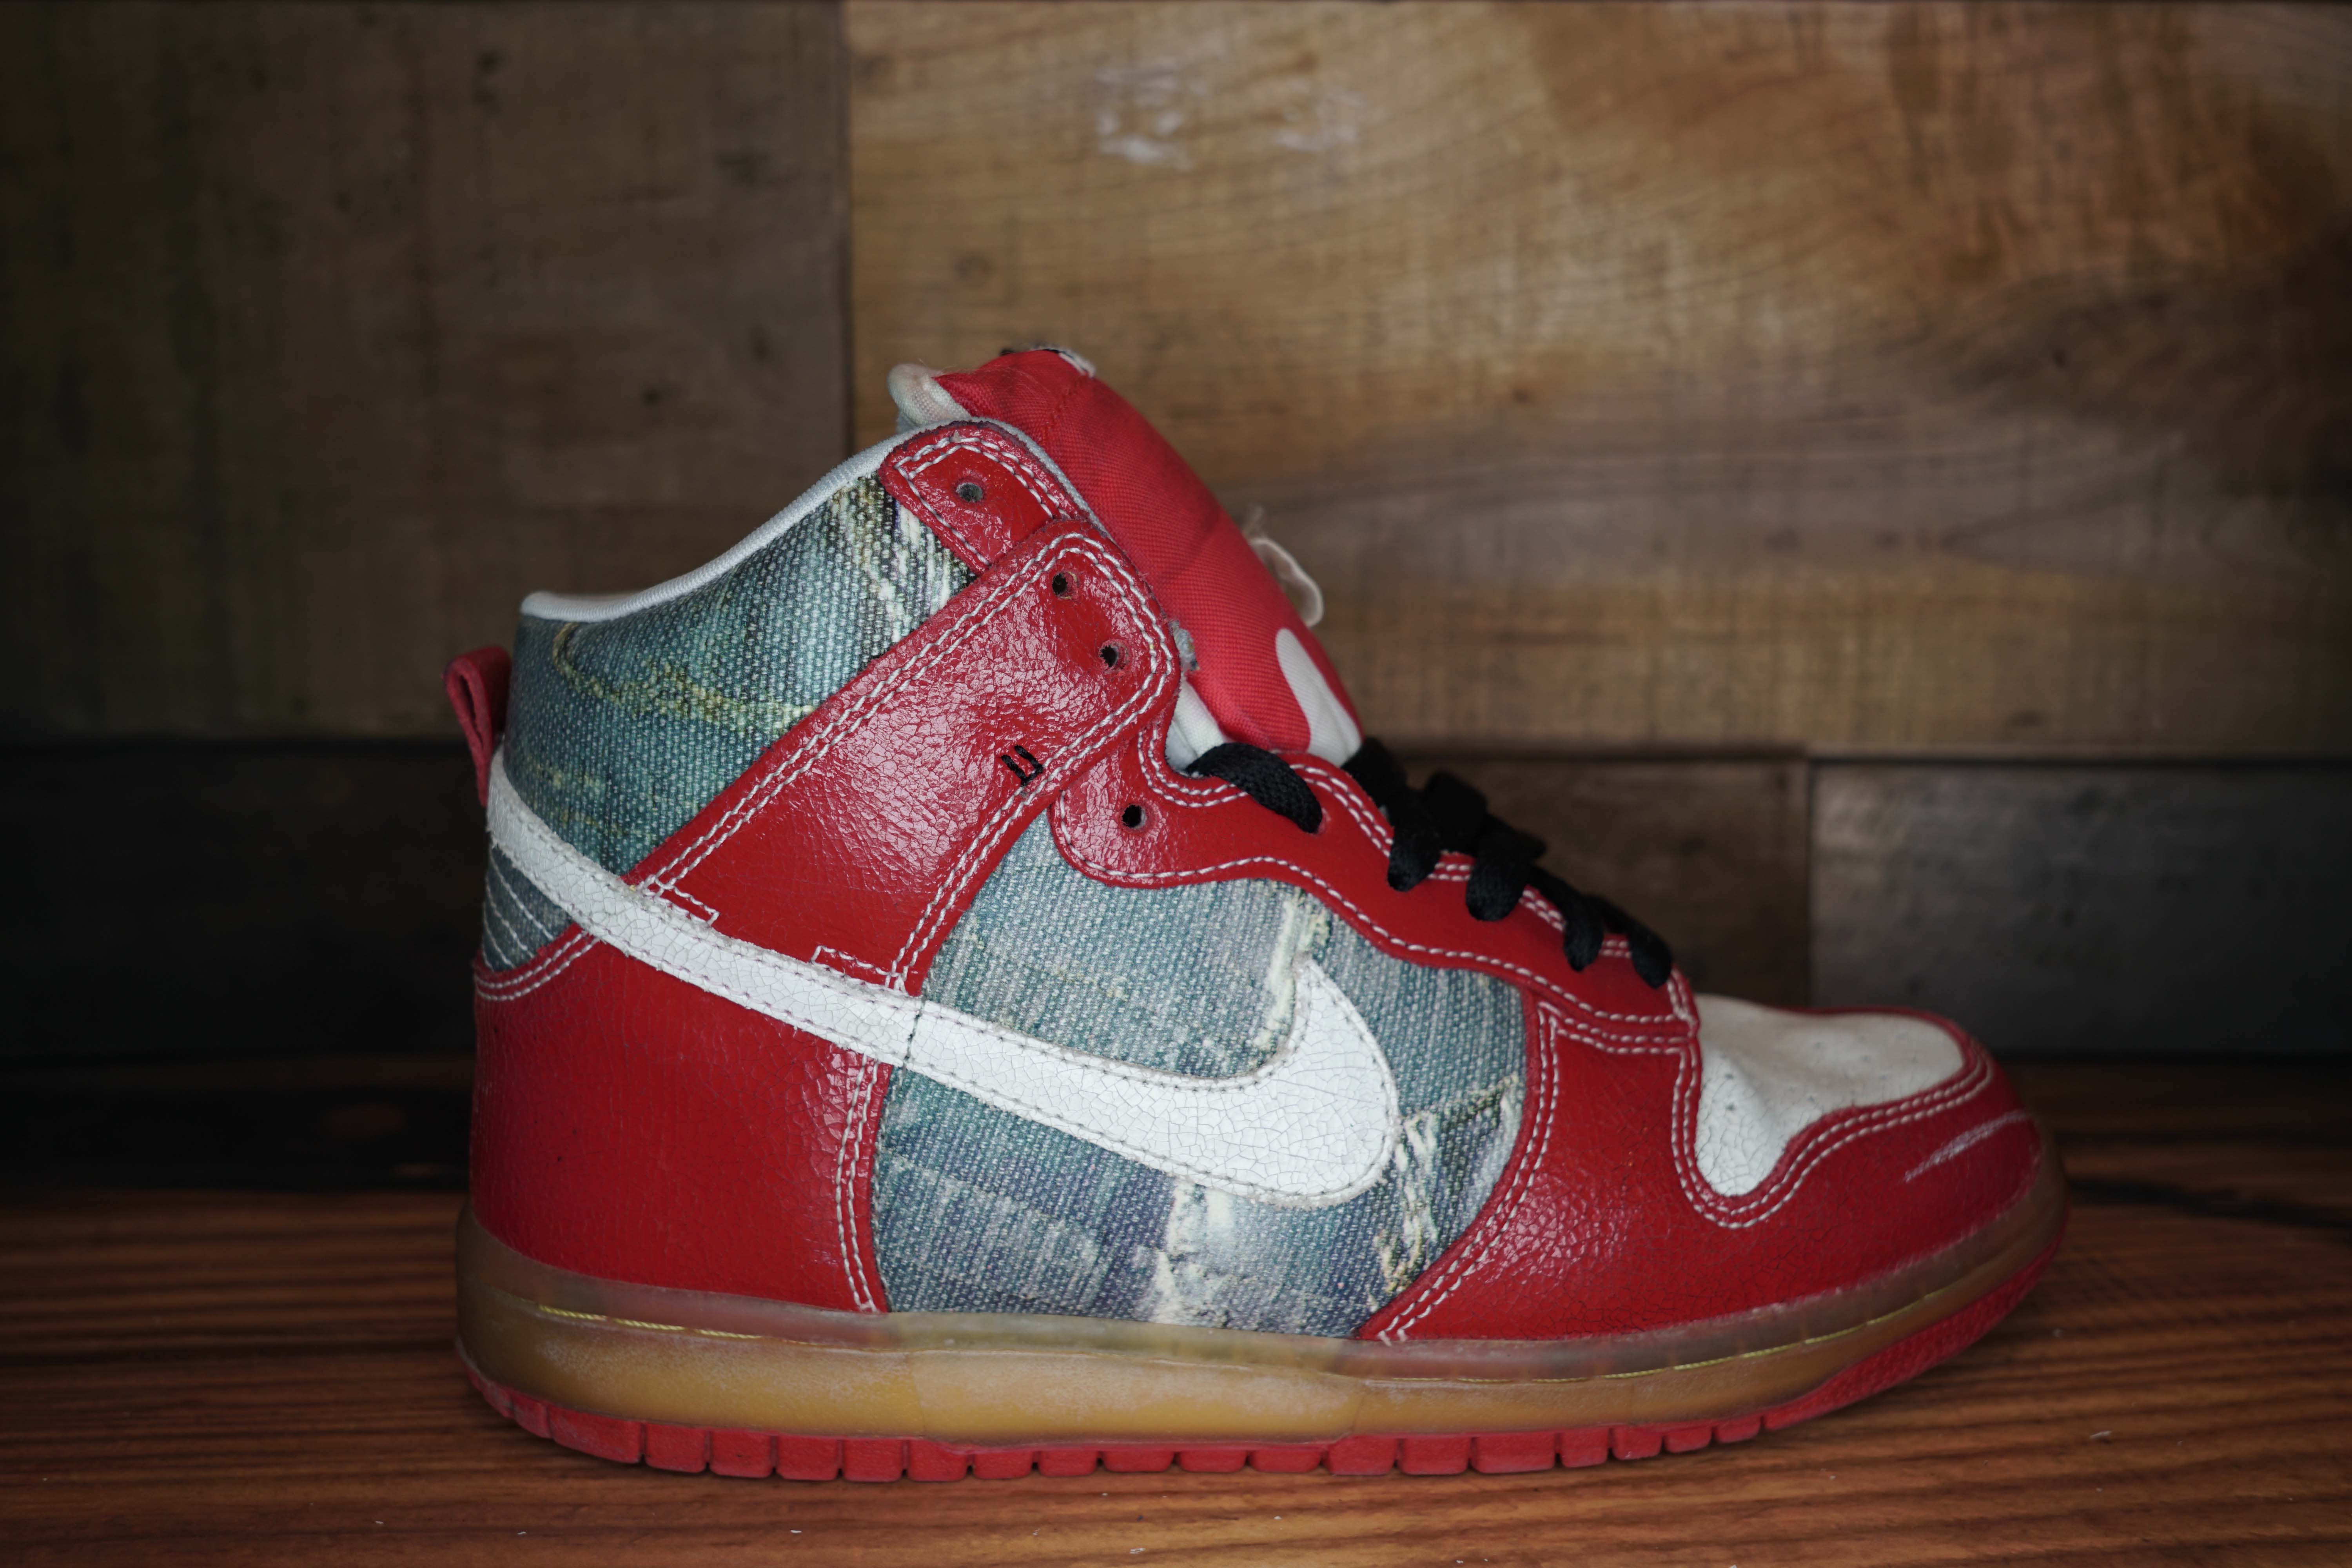 Nike-Dunk-High-Premium-SB-SHOE-GOO-2008-Used-Original-Box-Size-6.5-2310-2_12650A.jpg